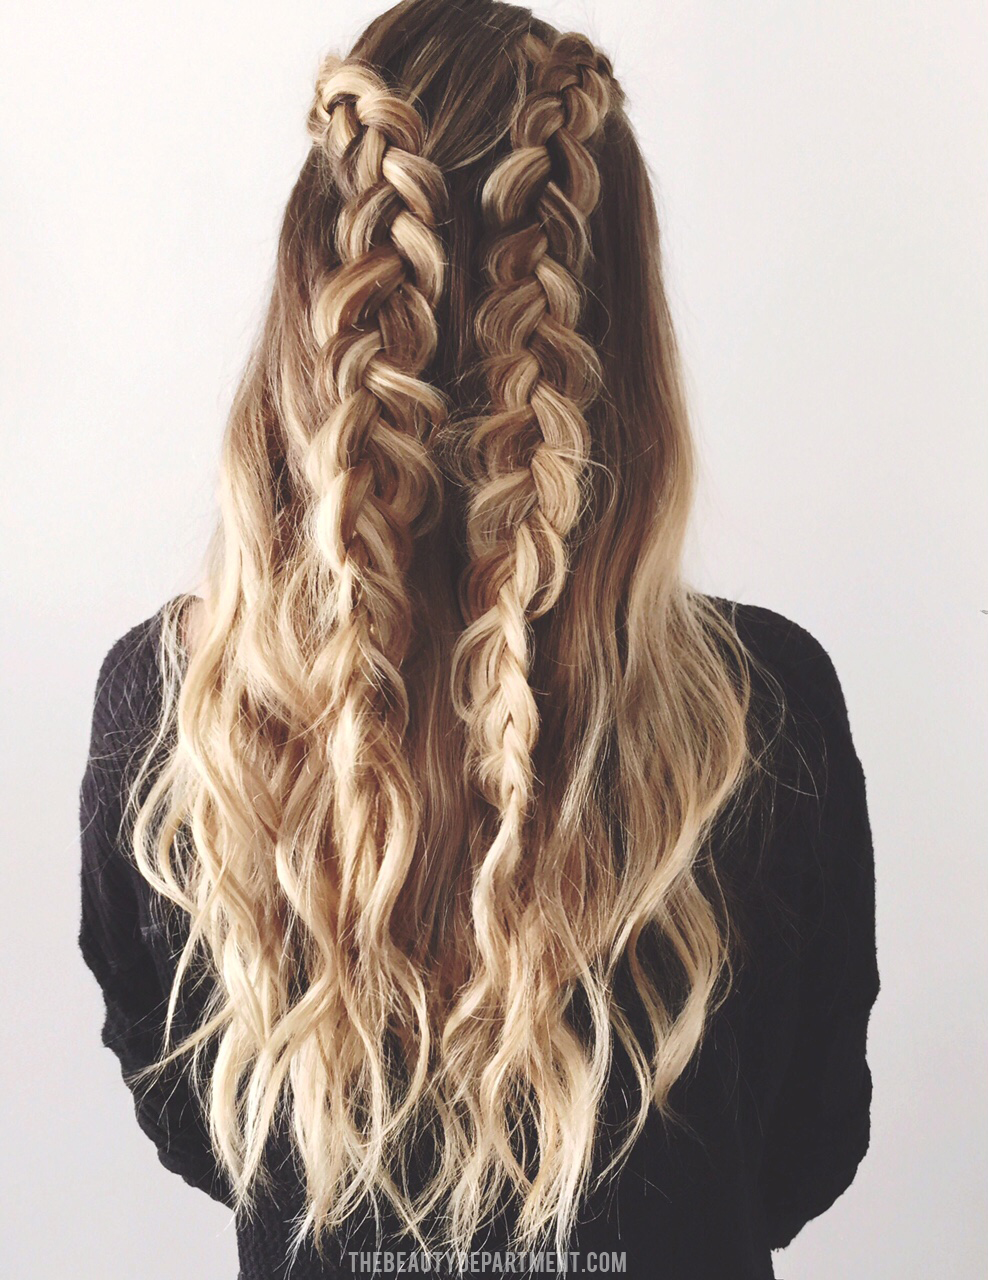 Awesome The Beauty Department Your Daily Dose Of Pretty 2 Braids 3 Ways Short Hairstyles Gunalazisus